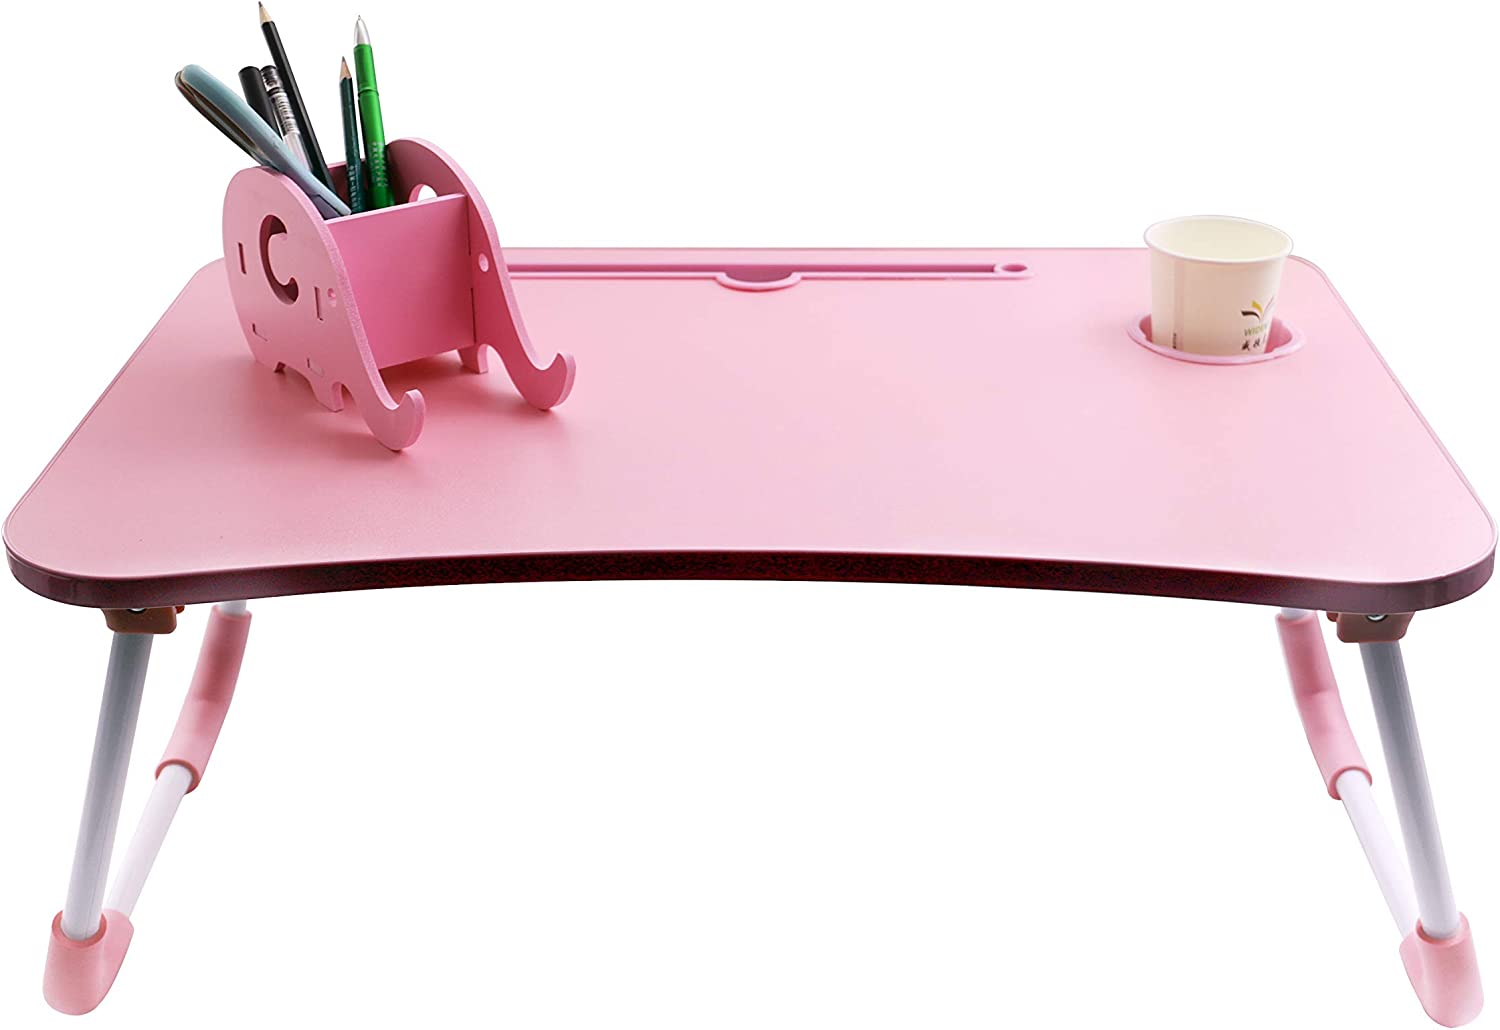 "Foldable Bed Desk Laptop Lap Tray Table Couch Floor Multifunction | Study Eating | Drawer Cup Holder + Pen Holder with Cellphone Stand | Wood Lap Desk & Metal Legs | 24""x16""x12"" Set 2 pcs (Pink)"